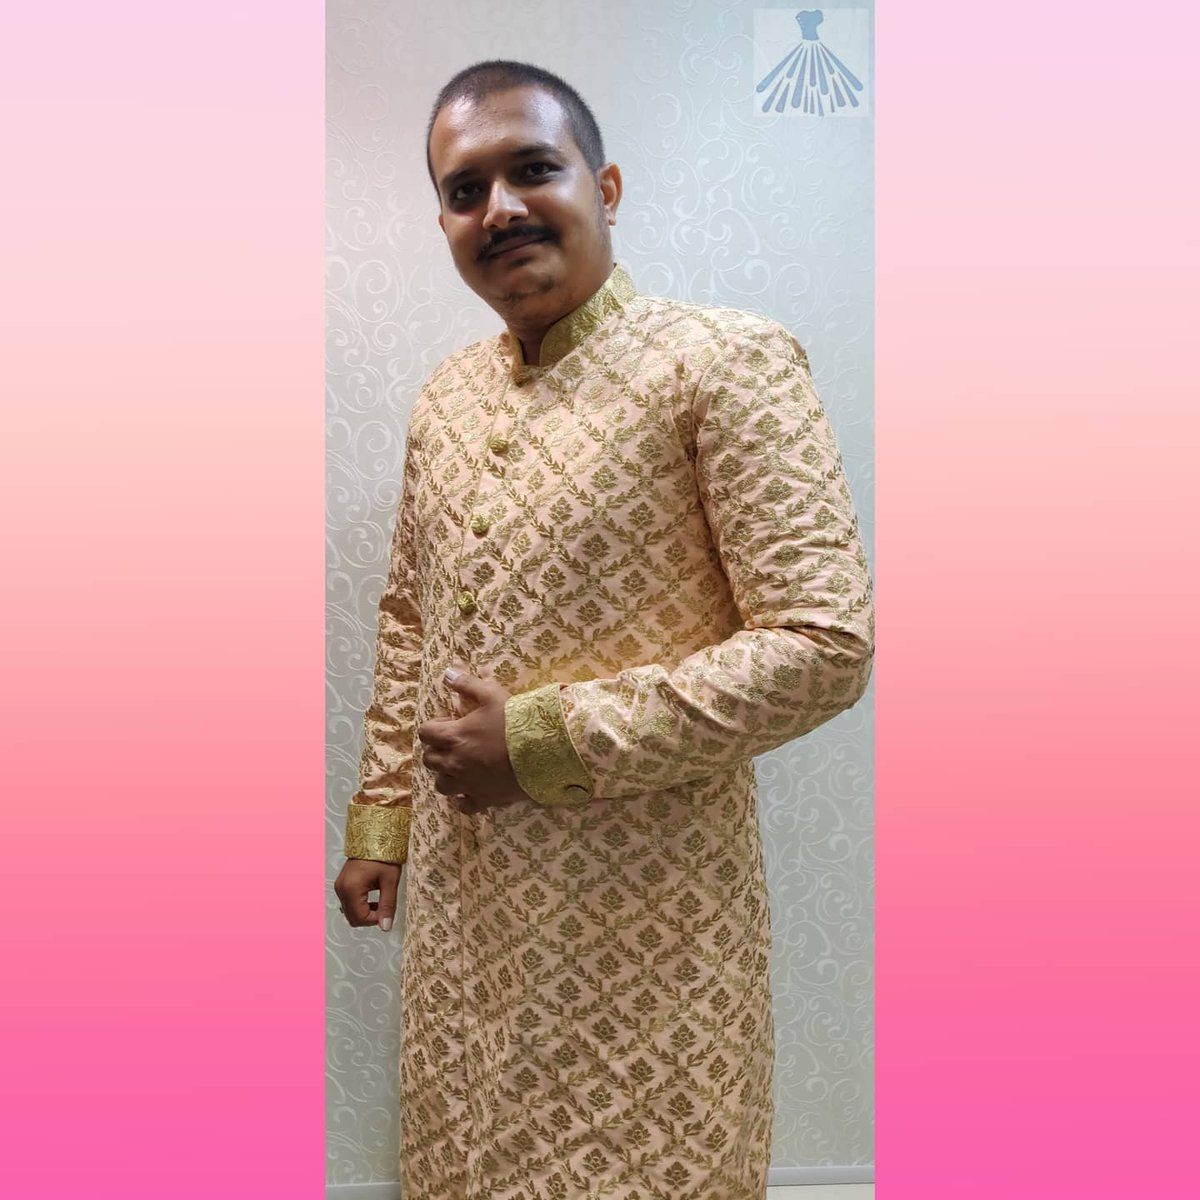 Affordable luxury for the quintessential modern Indian man.. contact- 7046667770/71/72/81 lovelylook #FabricManufacturers #LehengaFabricOnlineIndia #FancyFabricManufacturersInSurat #FabricDesign #FabricDesignCollection #FabricStores #FabricTexture #FabricOnline #TFLers #love